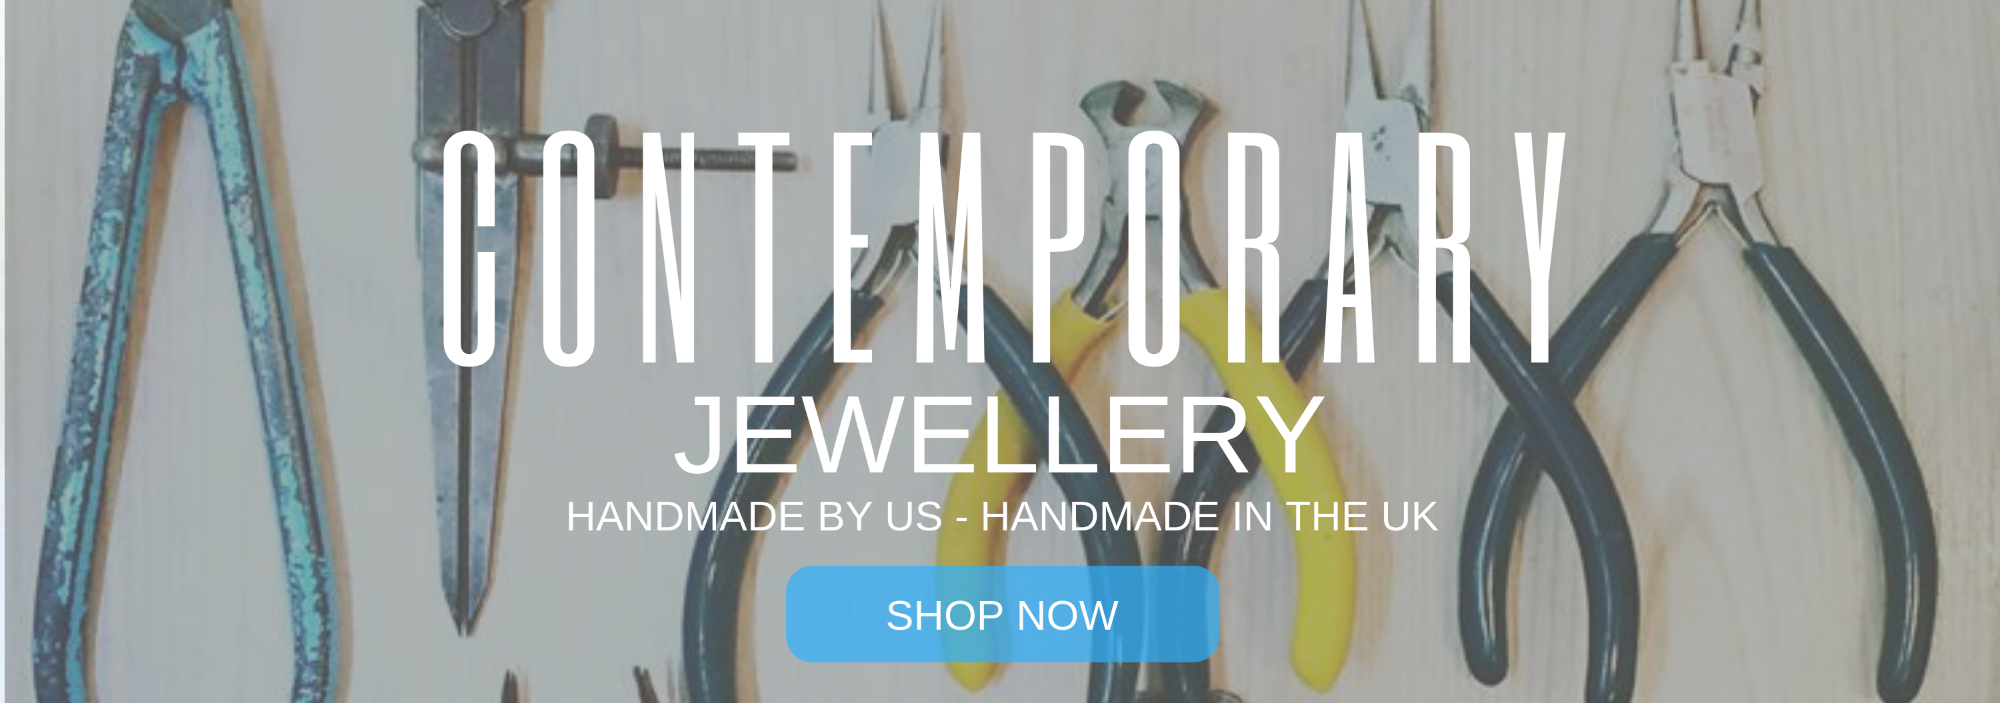 Contemporary Jewellery, Handmade by us, handmade in the UK